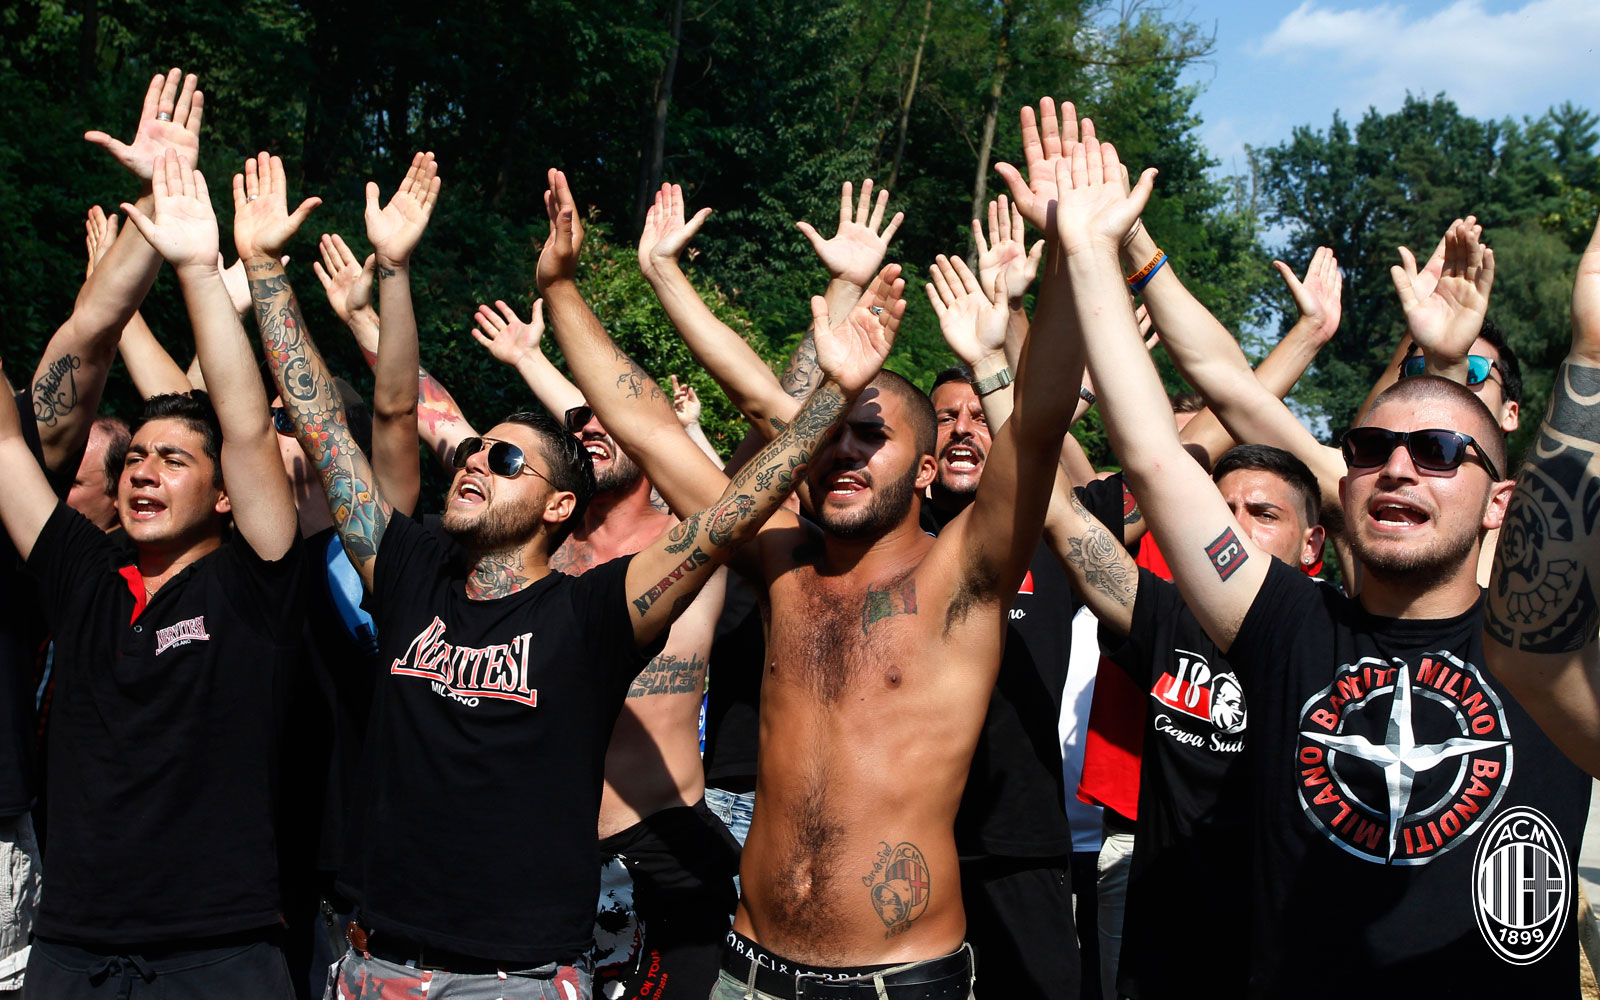 Milan fans during training at Milanello on July 9, 2018. (@acmilan.com)